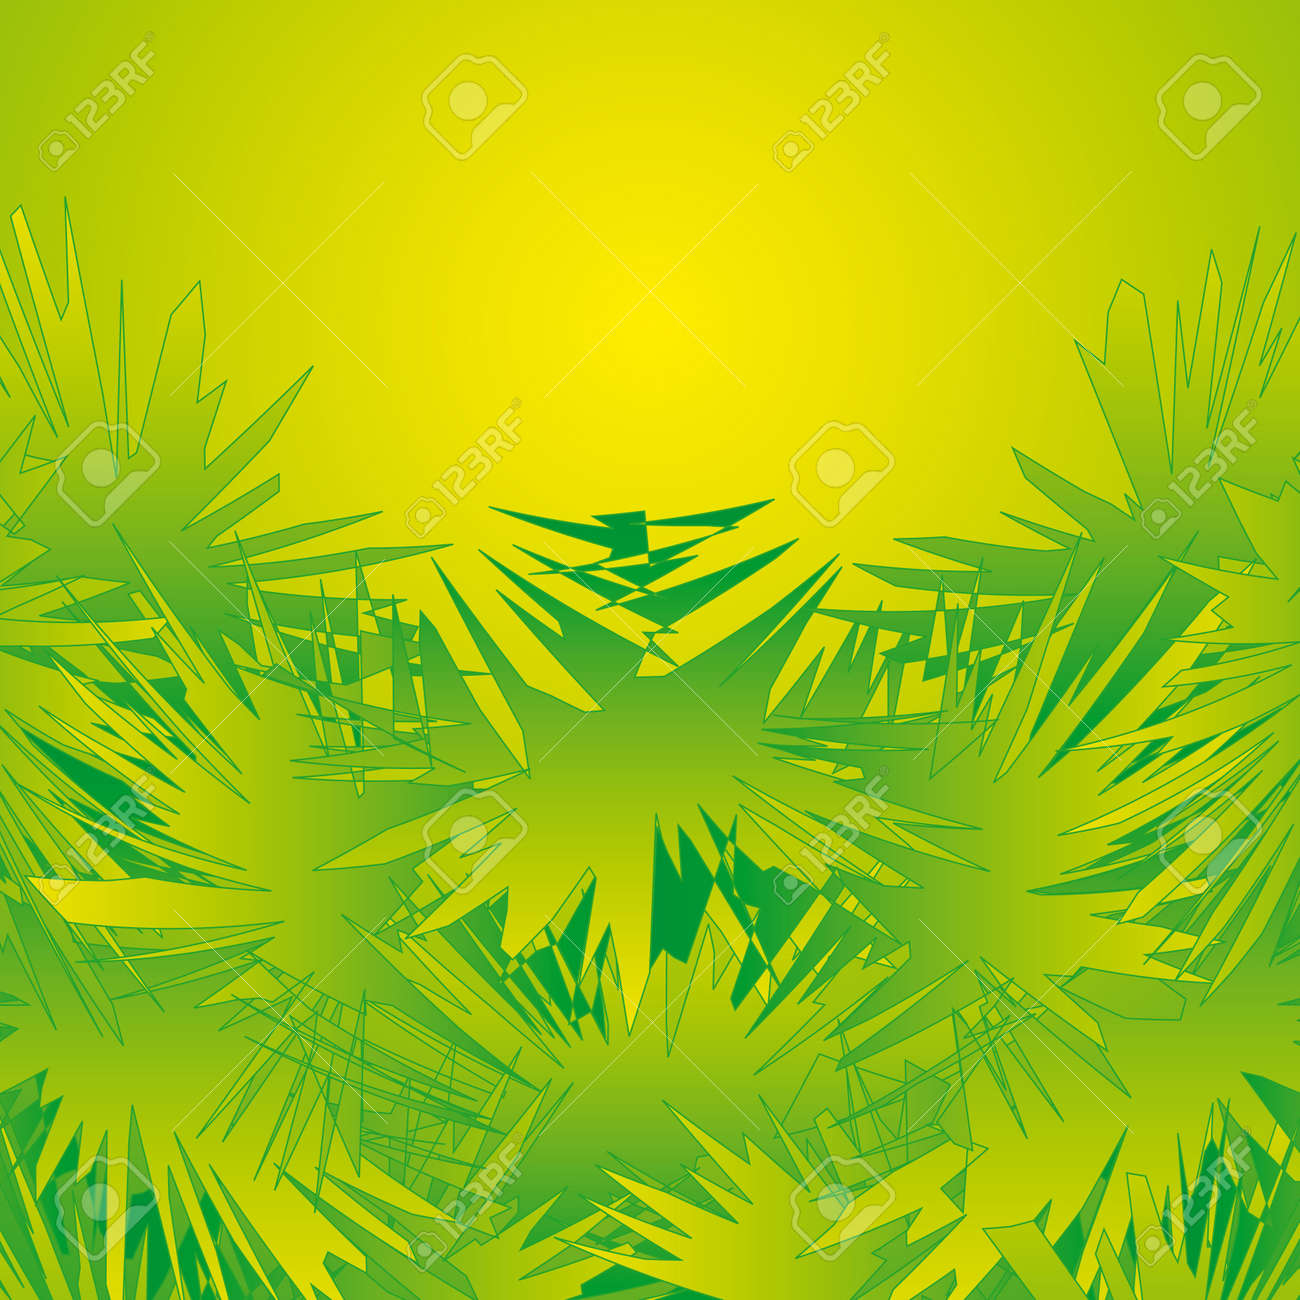 Jungle Decoration Royalty Free Cliparts, Vectors, And Stock ... on